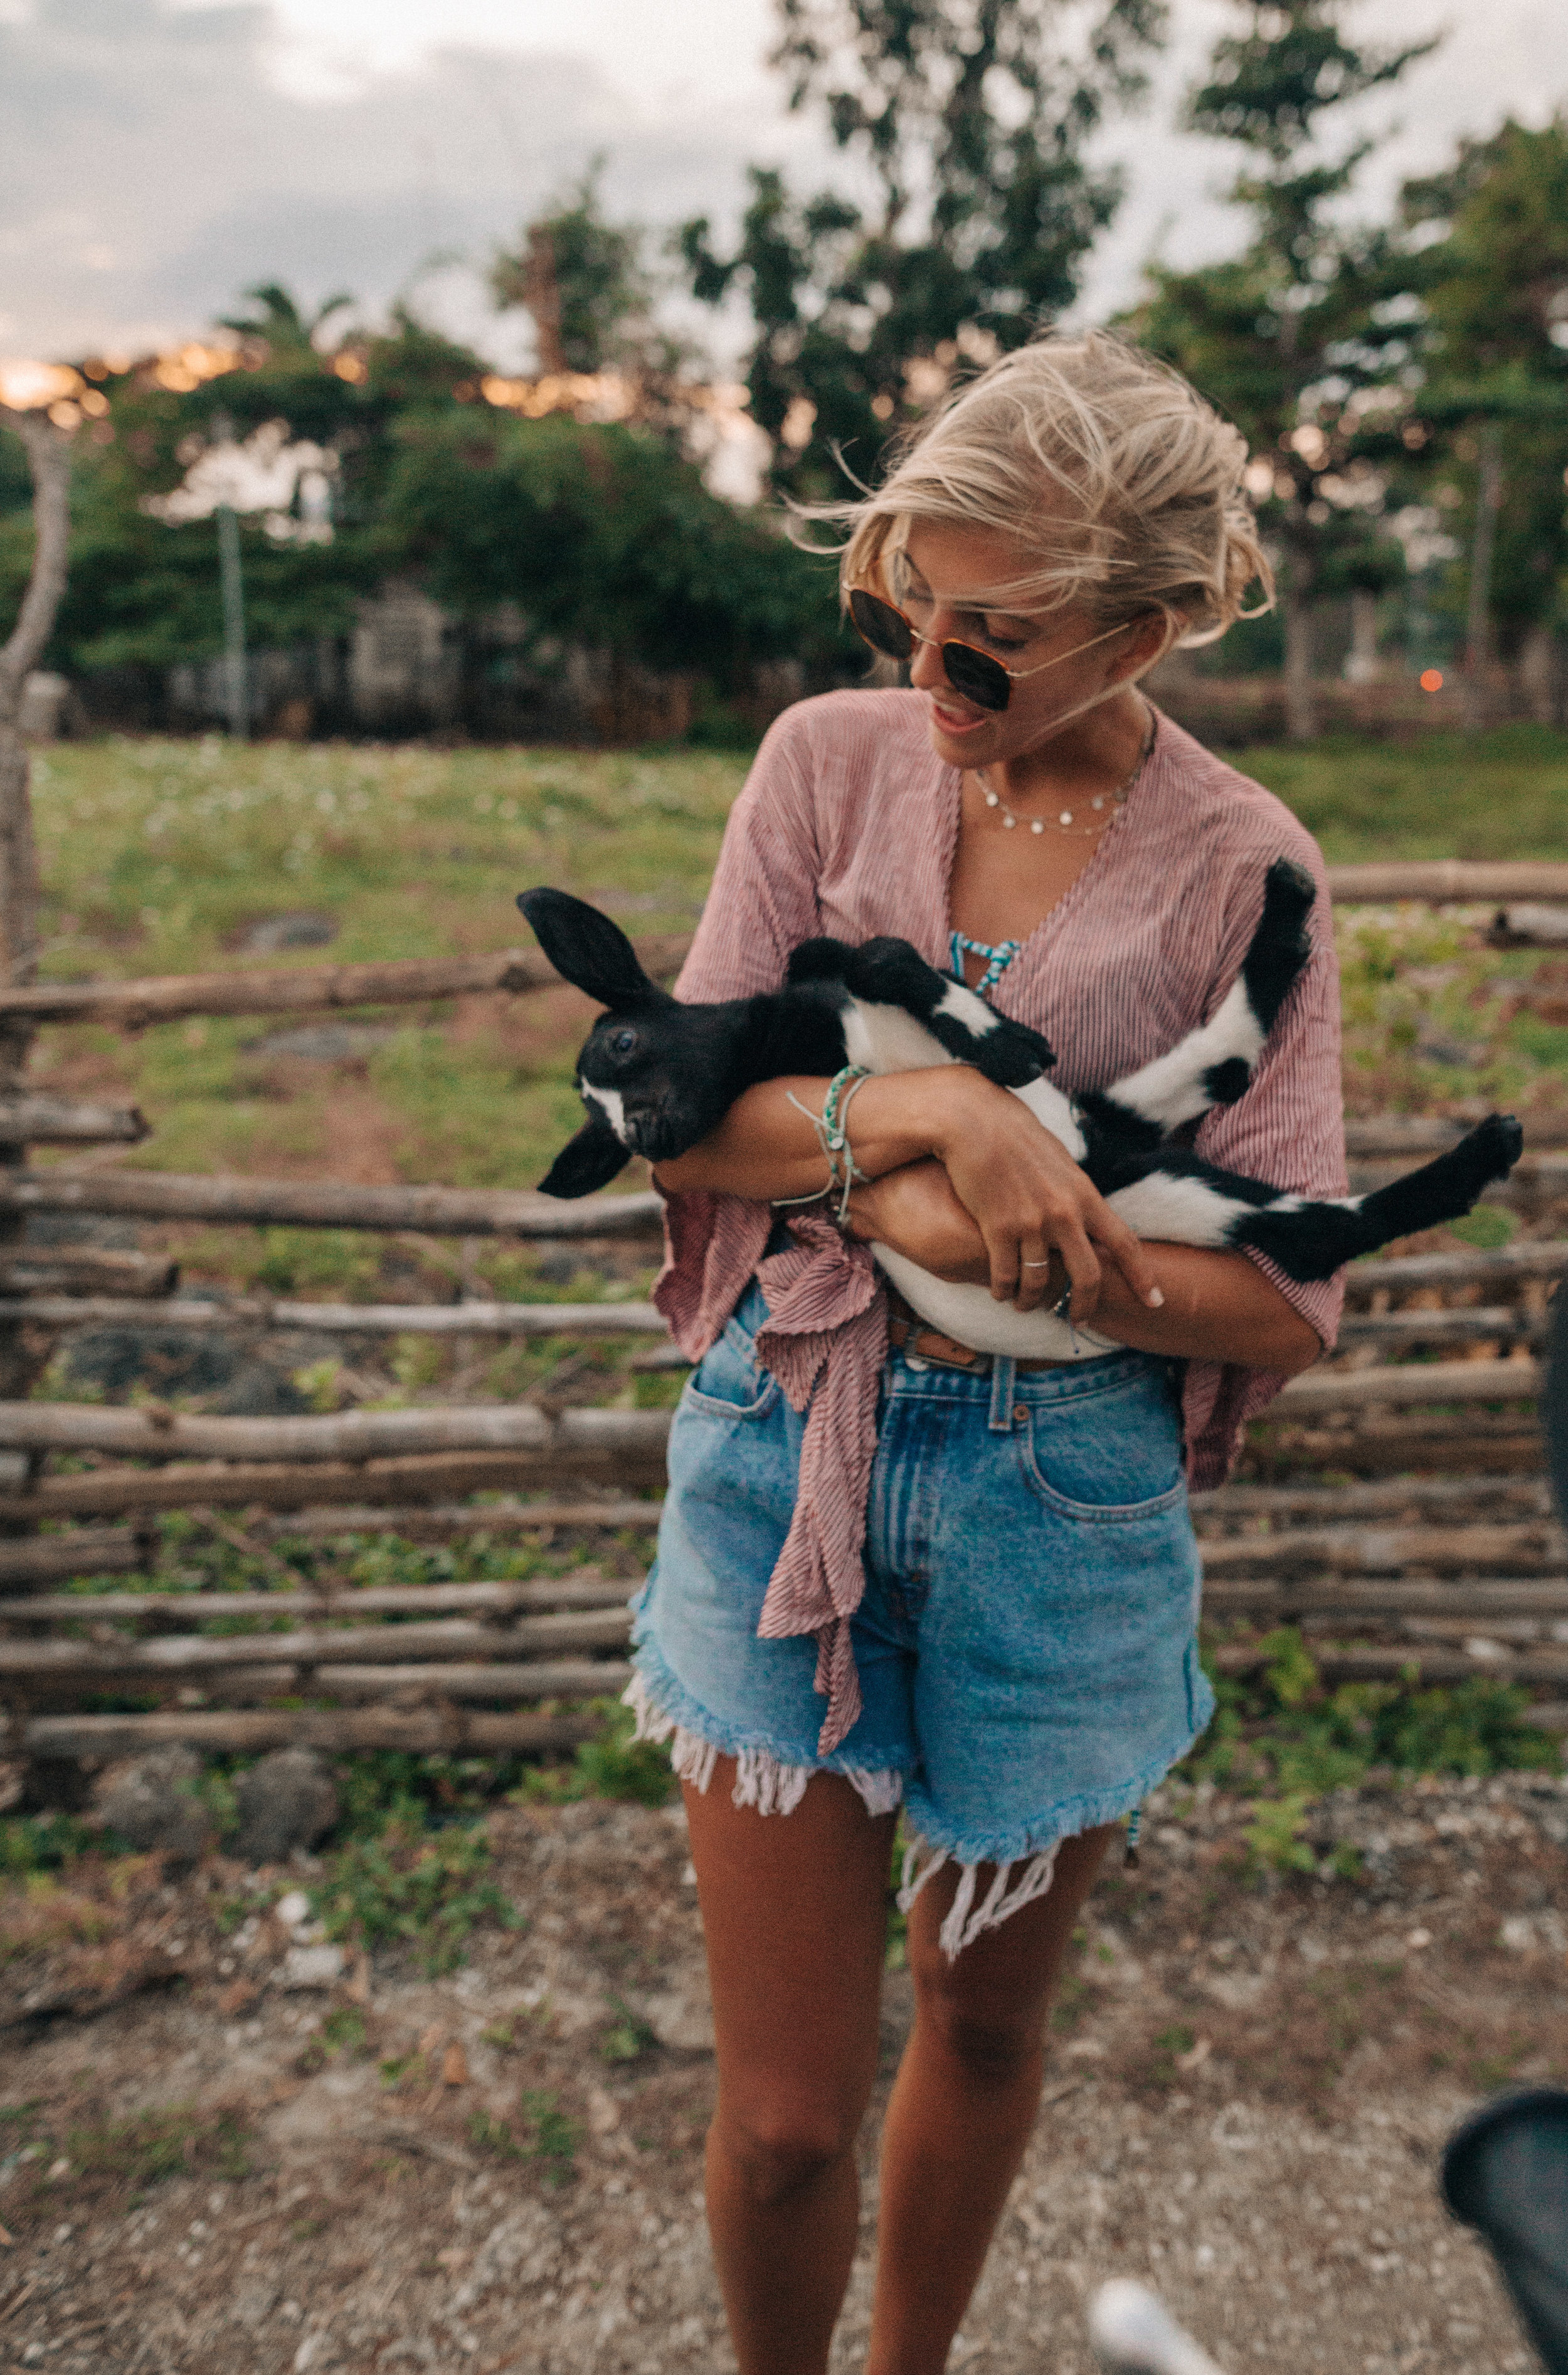 Cuddles to the baby village goats